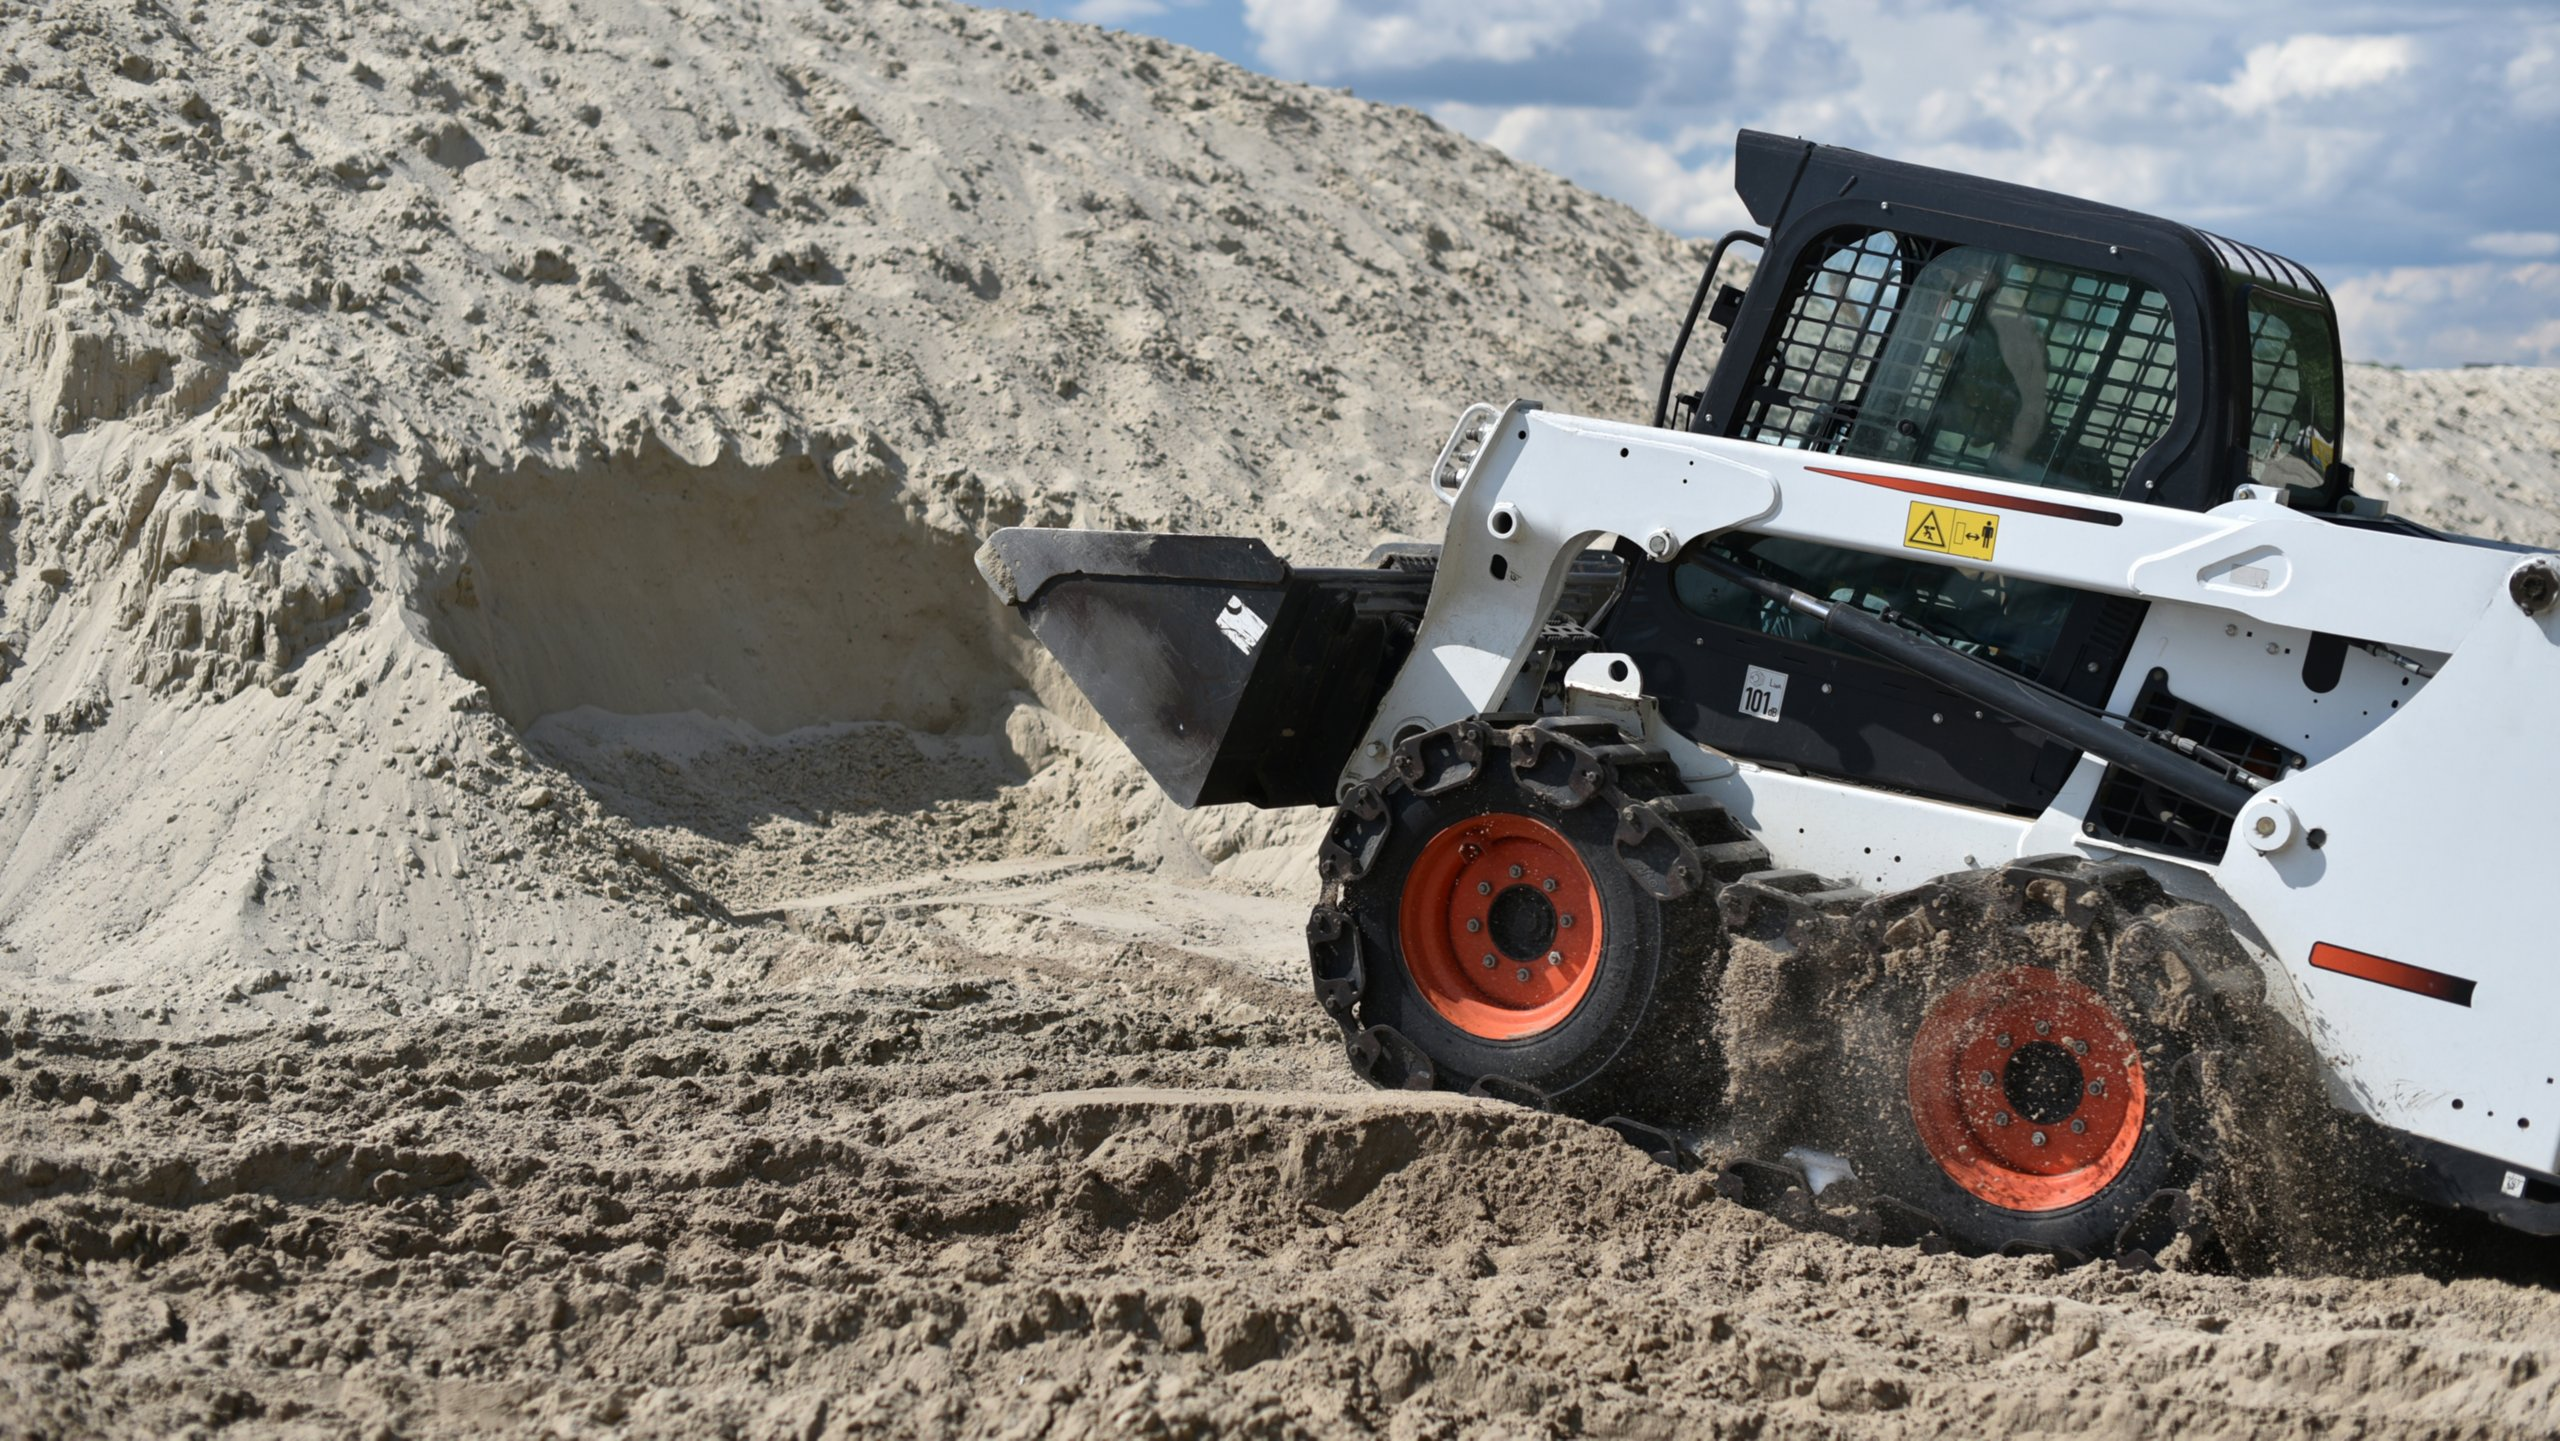 Bobcat scooping sand from a pile on a site